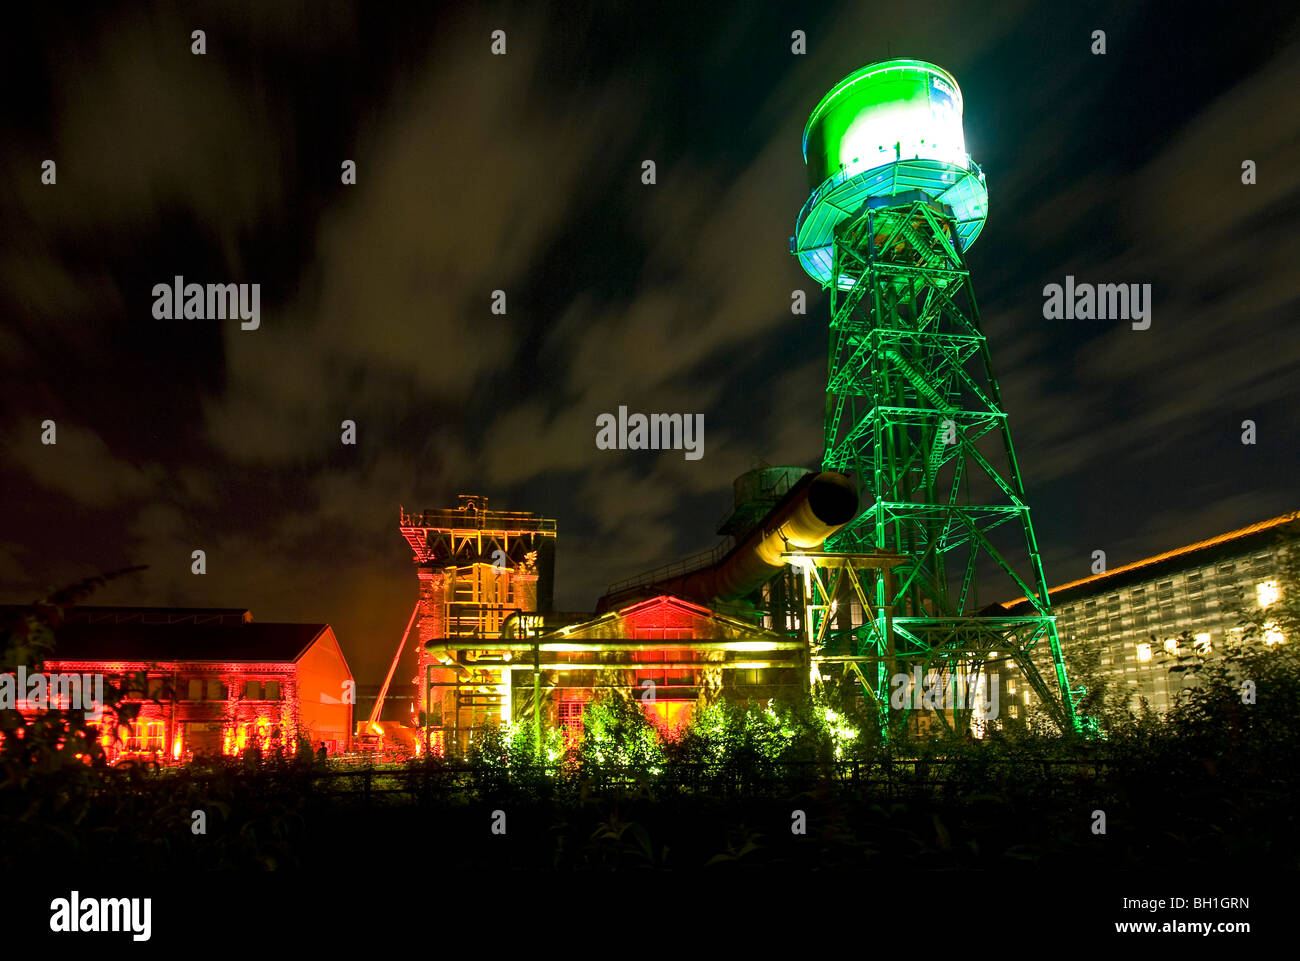 Illumination, Jahrhunderthalle, Bochum, Ruhr district, North Rhine-Westphalia, Germany - Stock Image